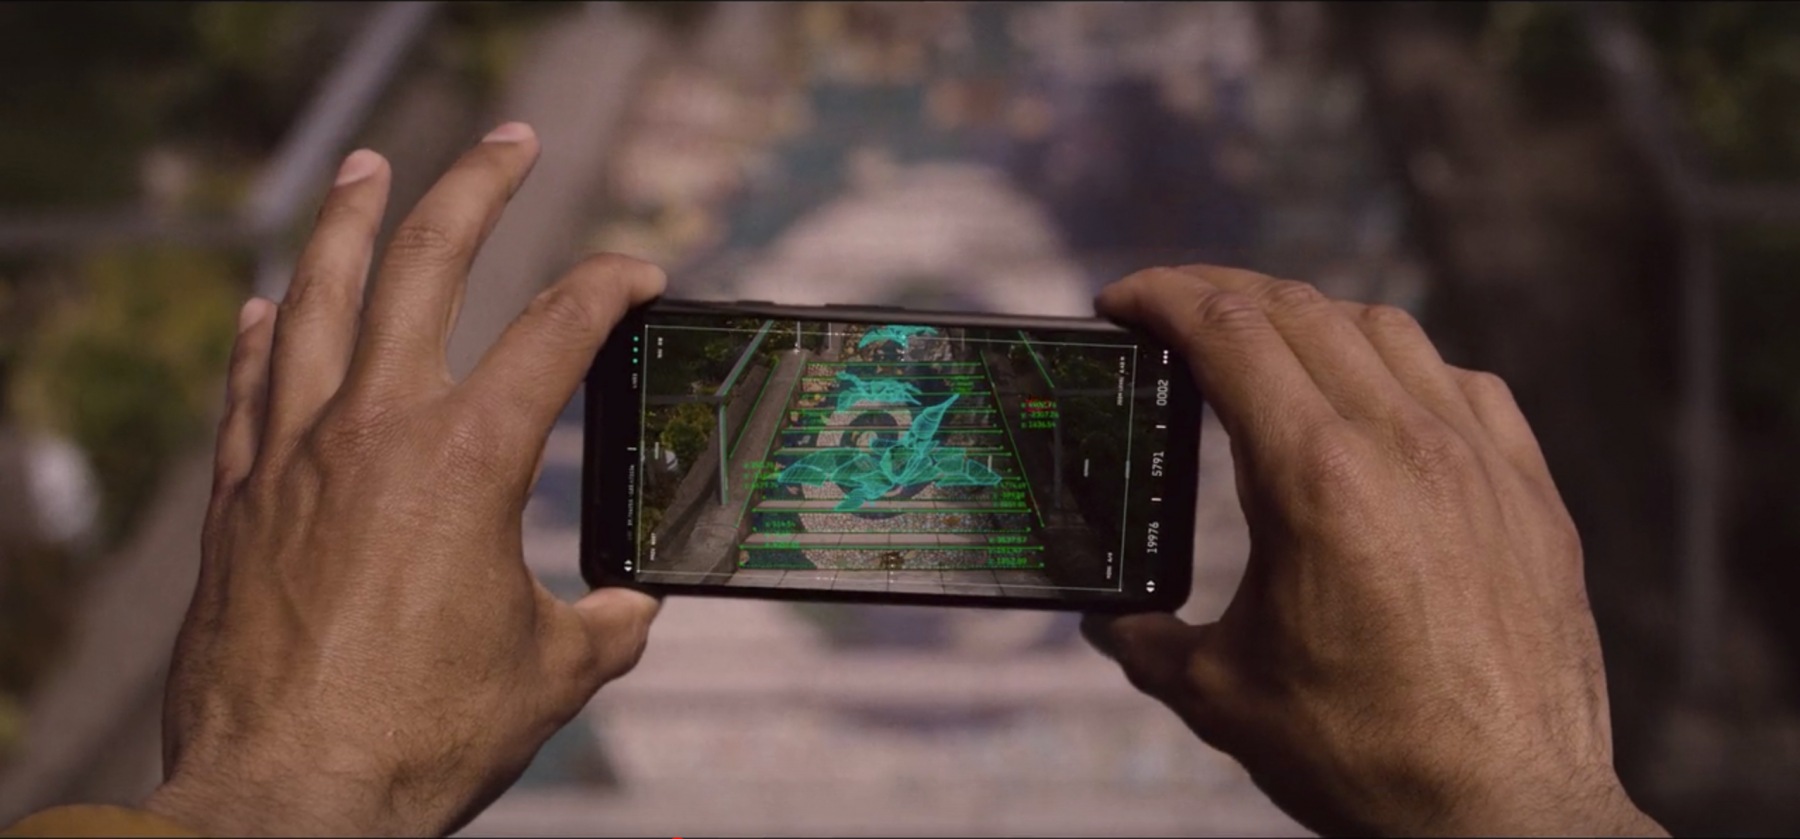 Karim explores augmented reality in The OA